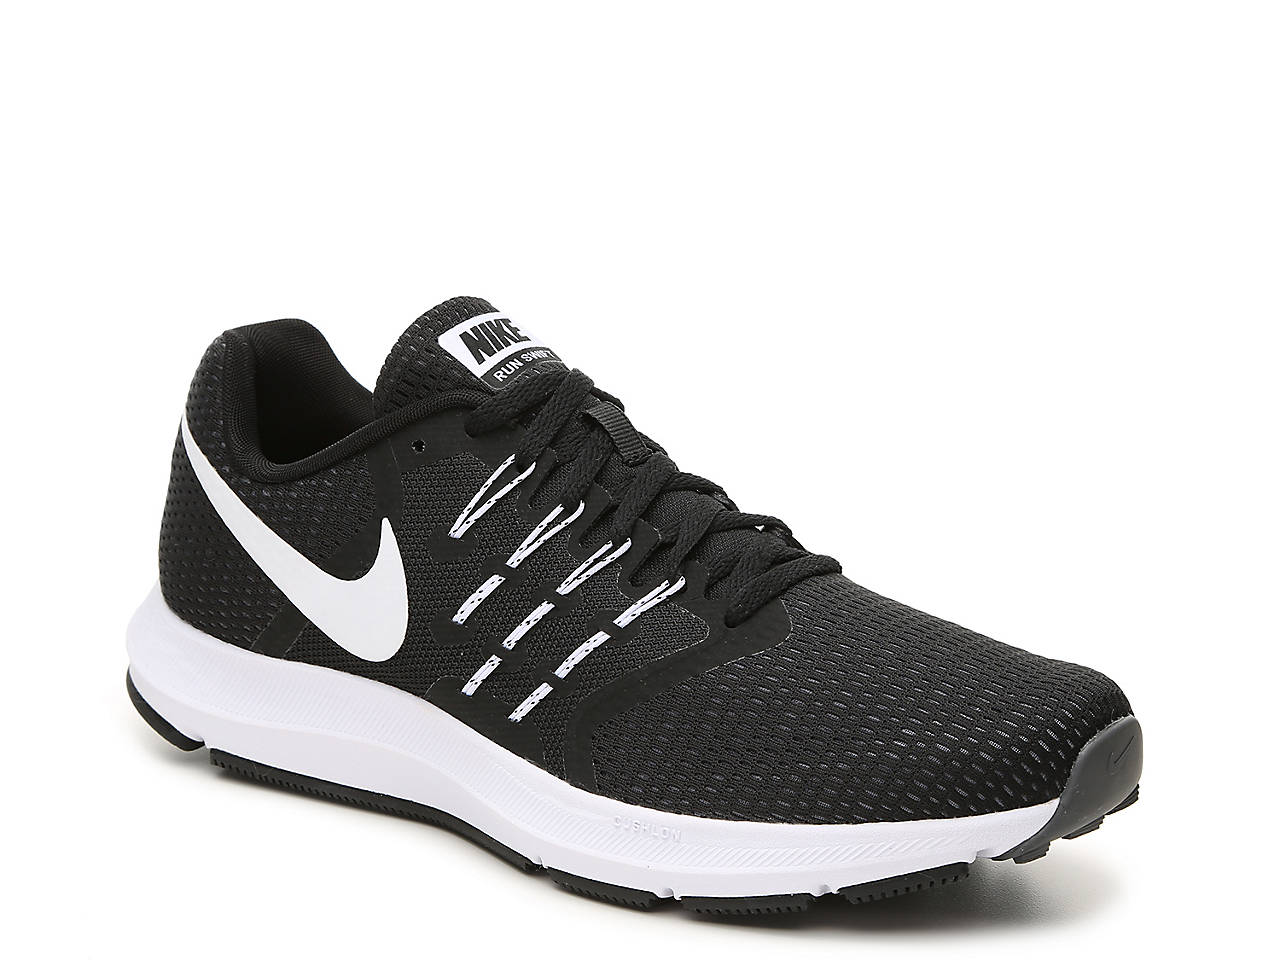 a91c4a14597 Nike. Run Swift Lightweight Running Shoe - Men s